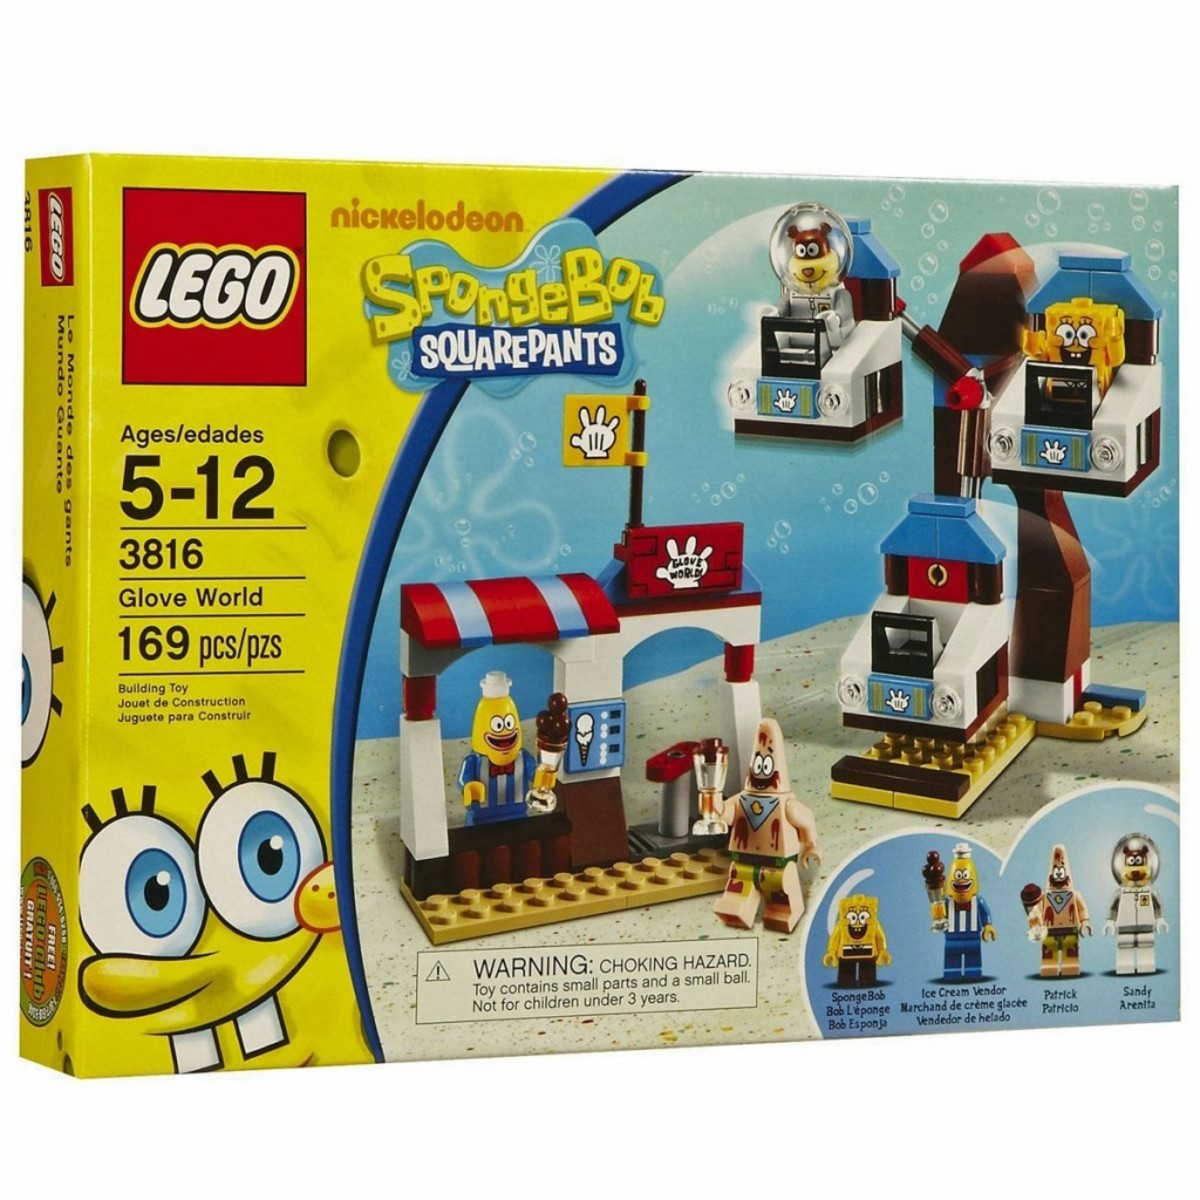 LEGO SpongeBob SquarePants Glove World 3816 Box